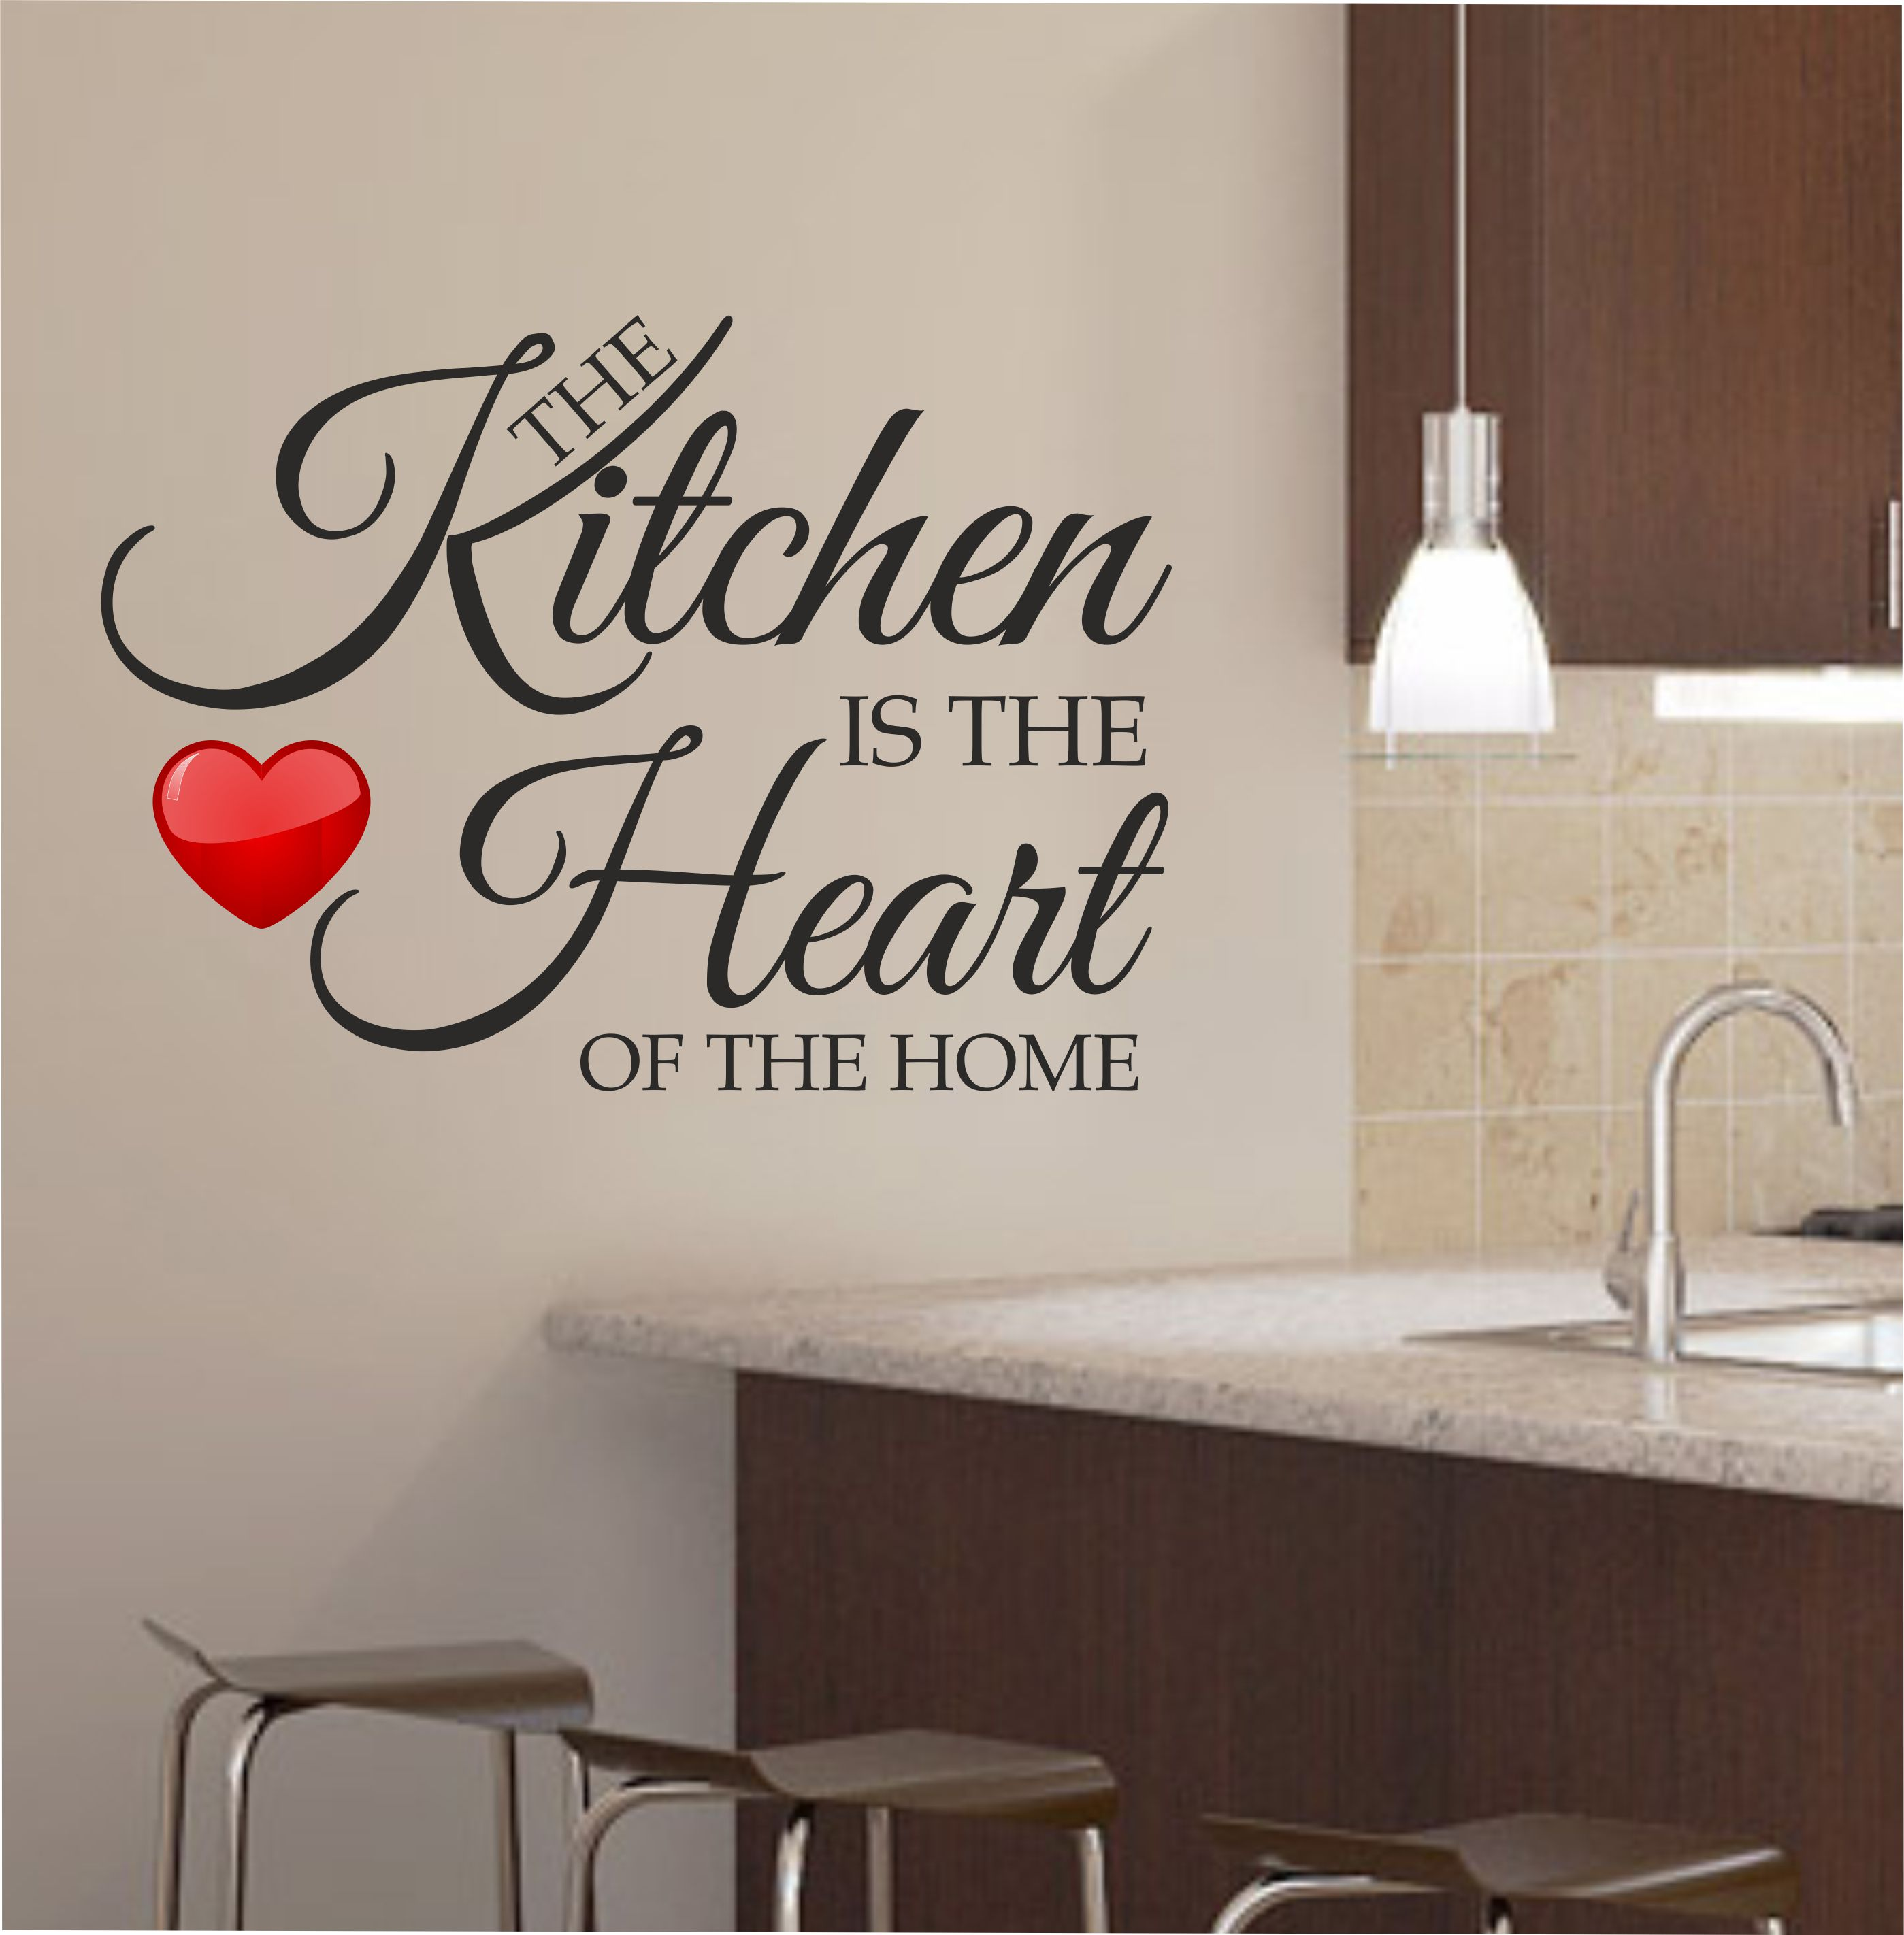 Modern Kitchen Wall Decor Magnificent Kitchen Wall Art For A More Fresh Kitchen Decor » Inoutinterior Review